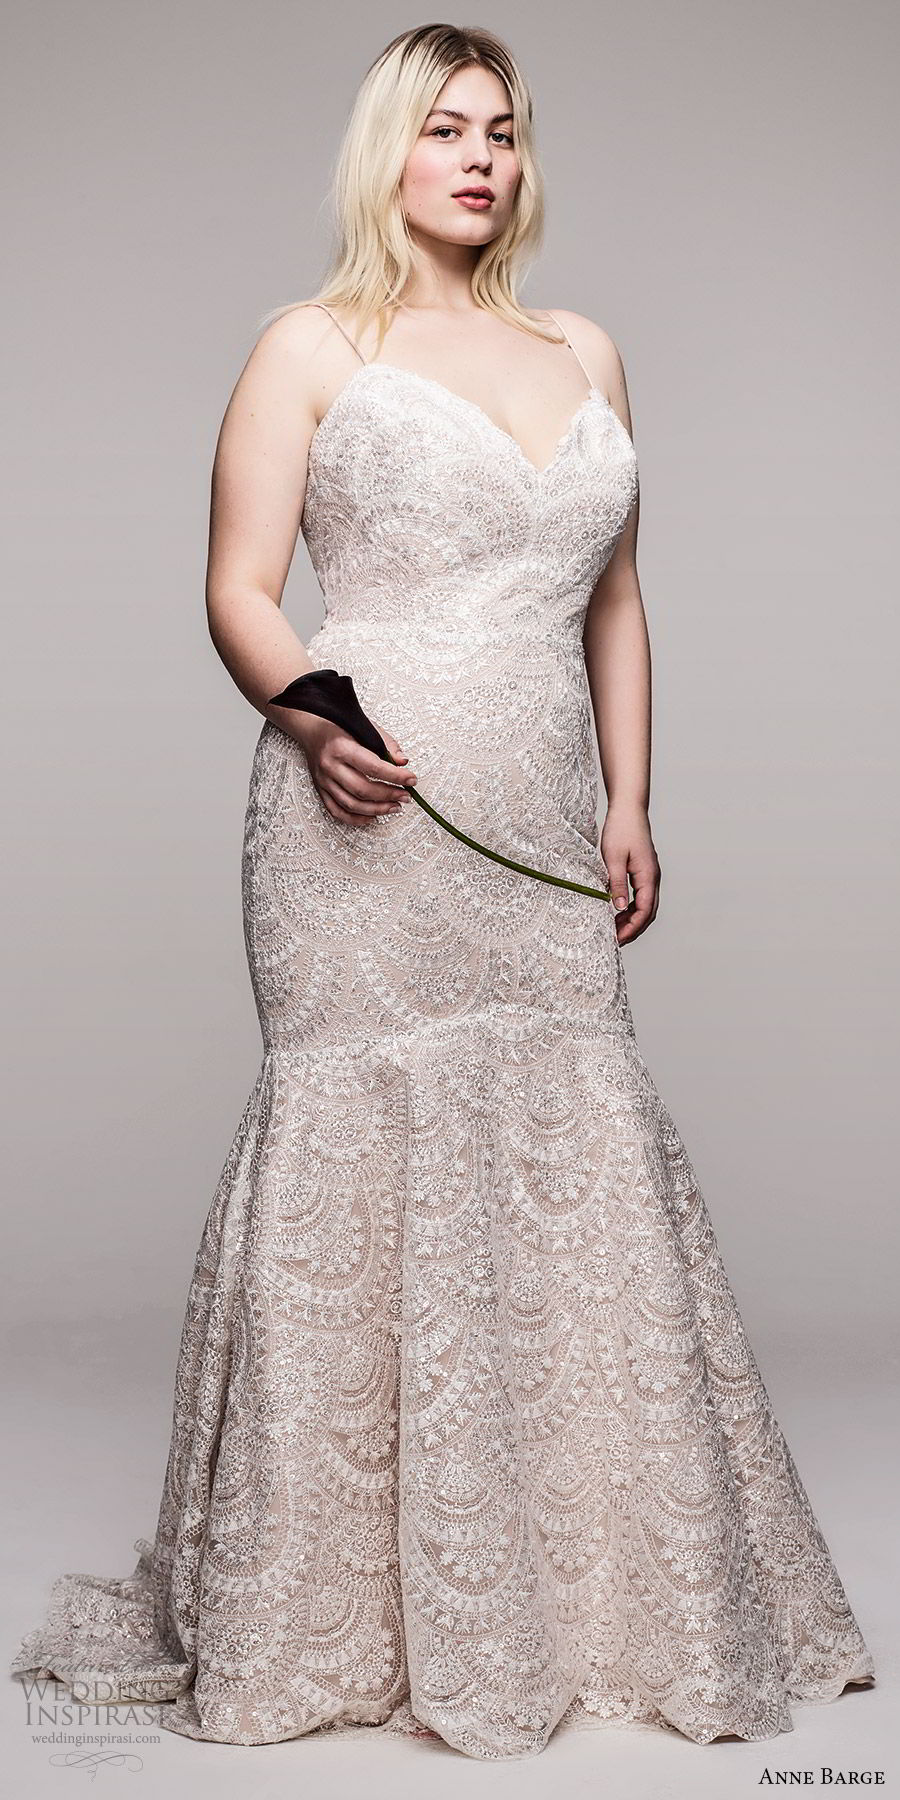 anne barge 2020 bridal plus size sleeveless thin straps sweetheart neckline fully embellished lace fit flare mermaid wedding dress (6) elegant romantic chapel train mv